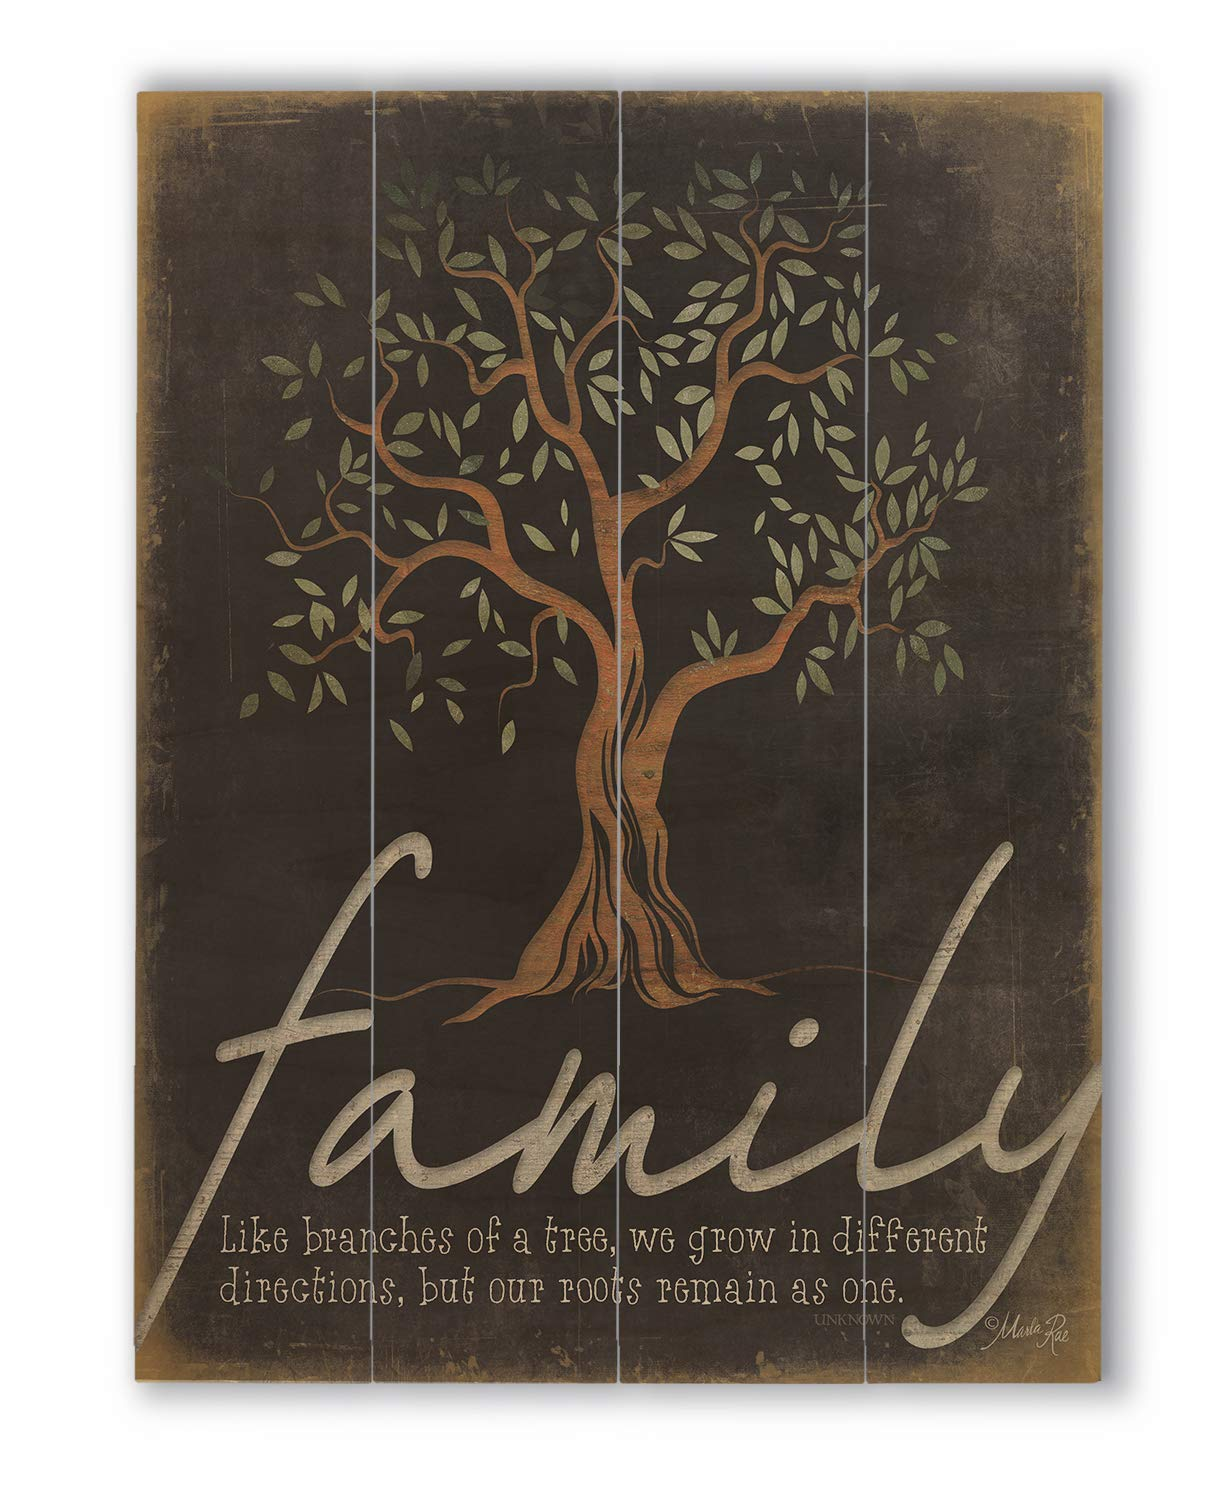 Wallsthatspeak Family Tree Wall Quote Wood Pallet Decor Rustic Farmhouse Print 12 X 16